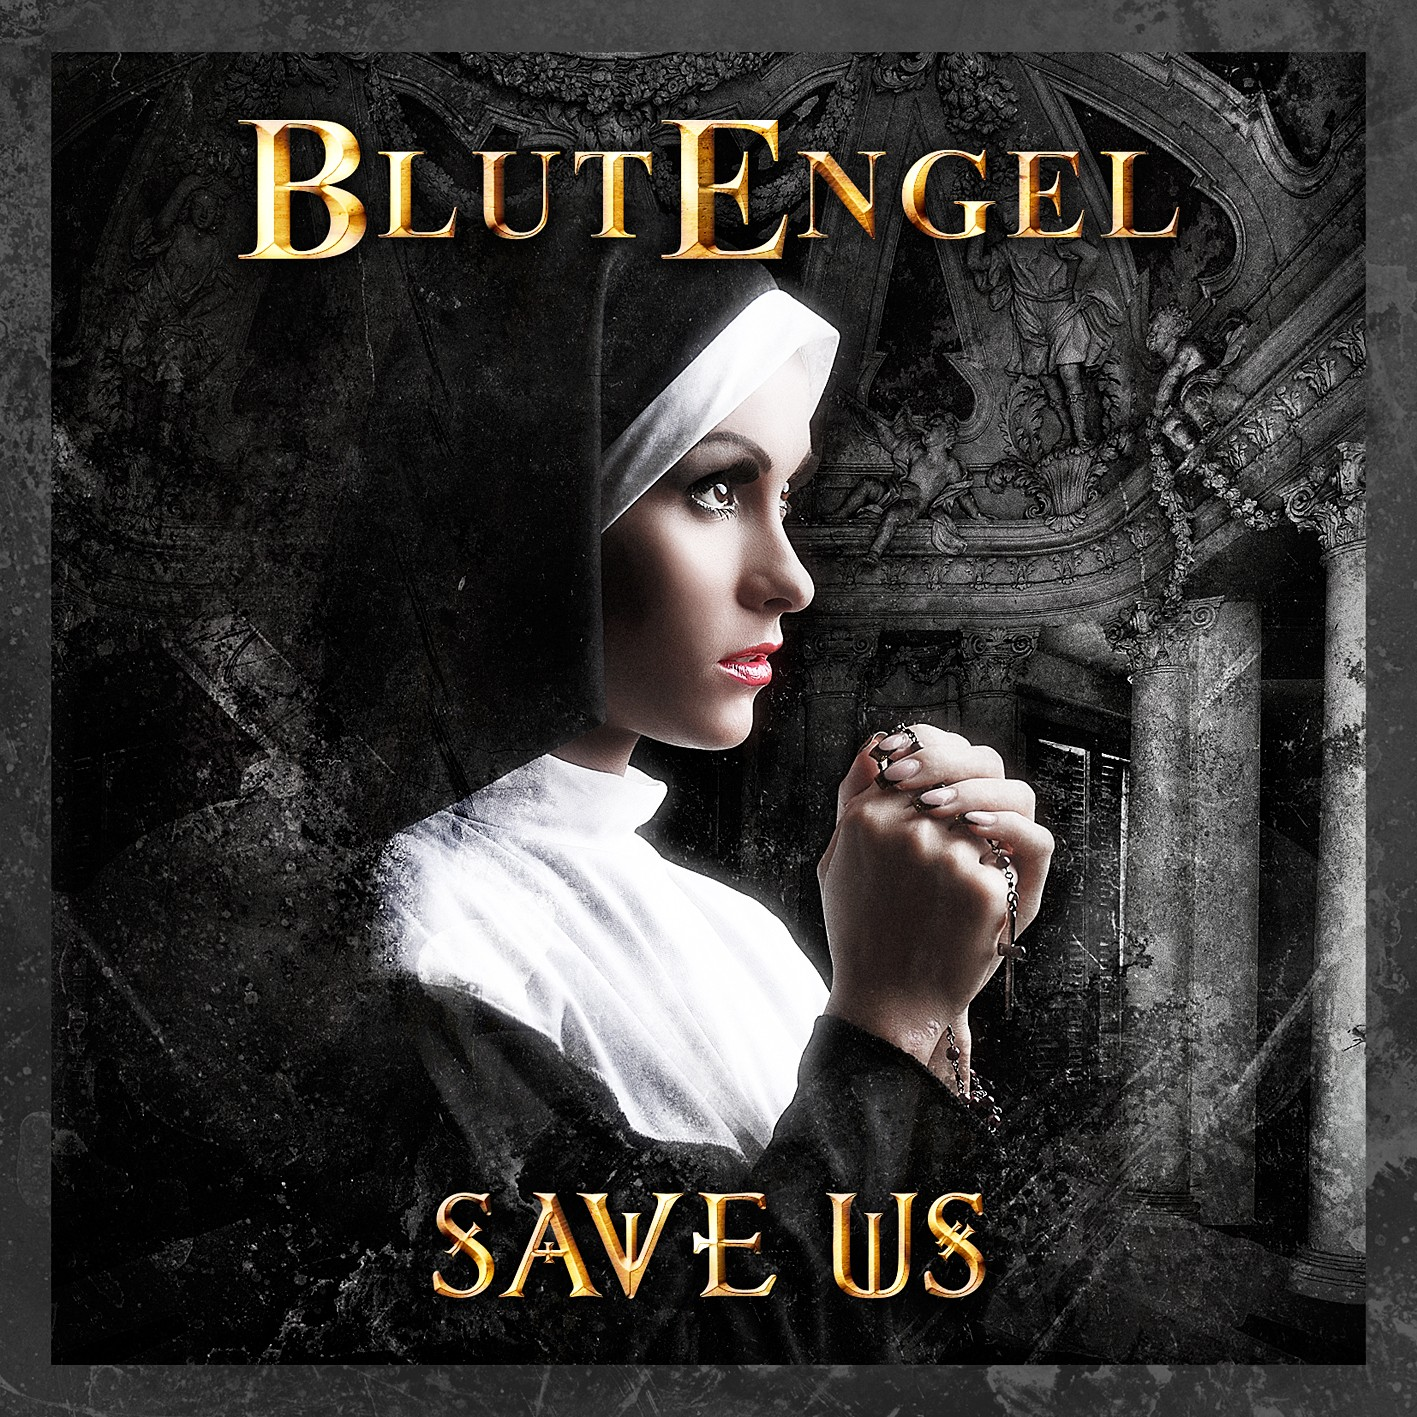 Blutengel - Save Us (Deluxe Edition) - 2CD